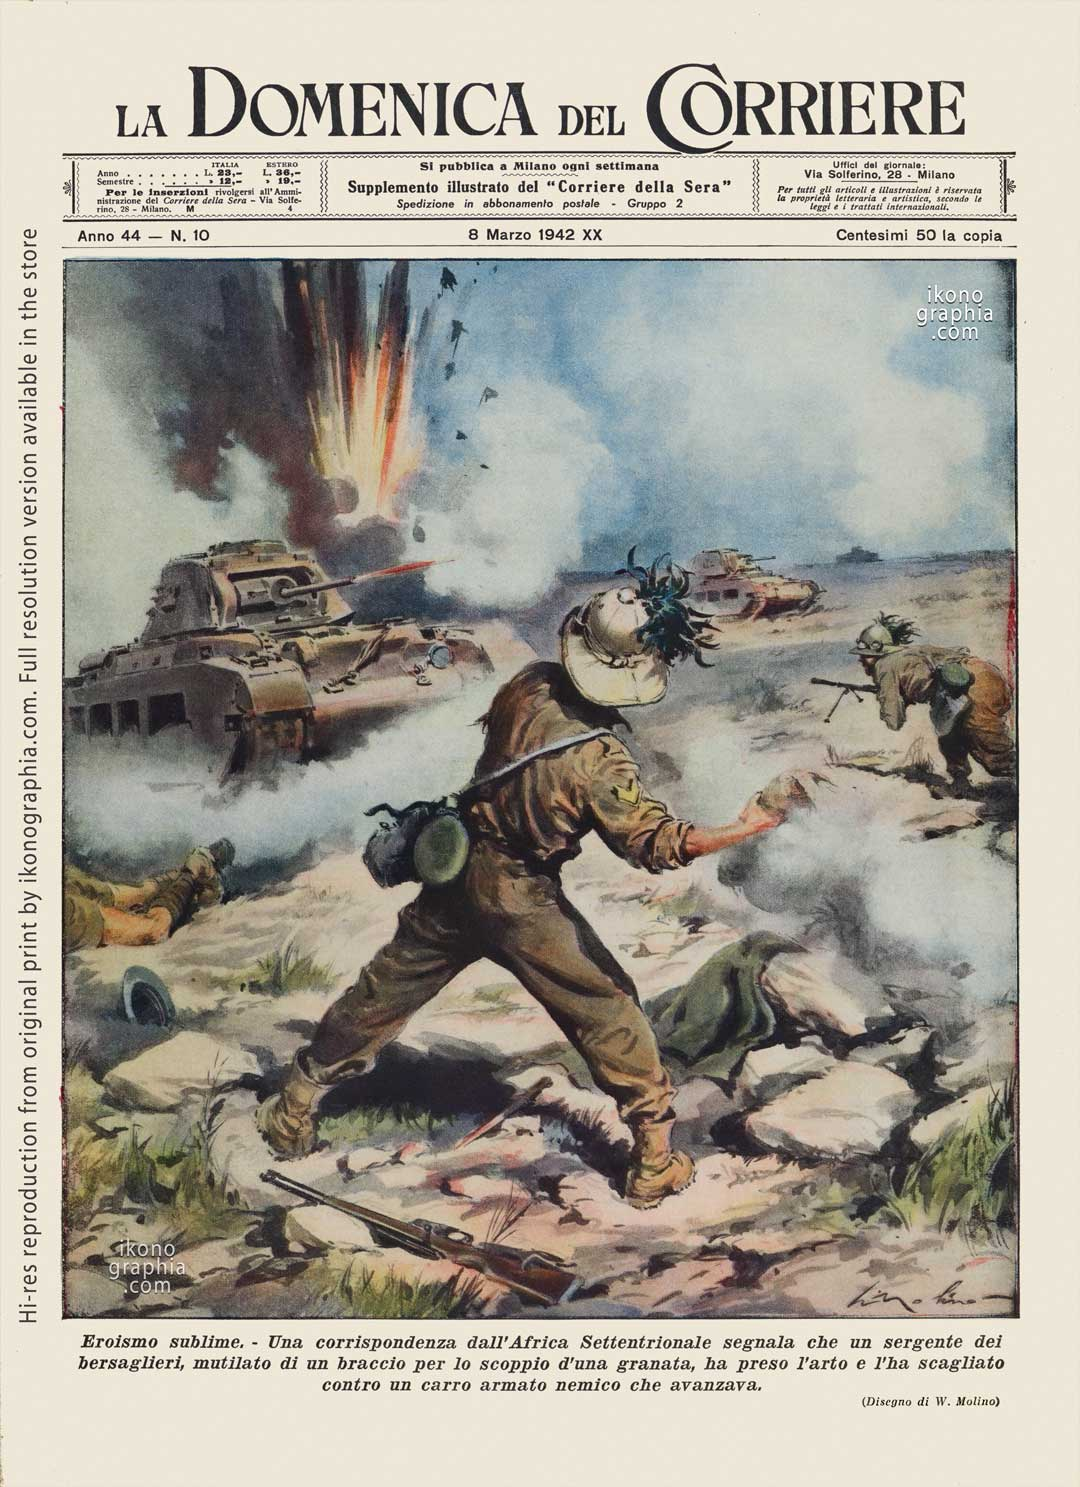 """A plate by Walter Molino, Beltrame's most talented pupil. for """"La Domenica del Corriere. Sublime heroism in North Africa."""